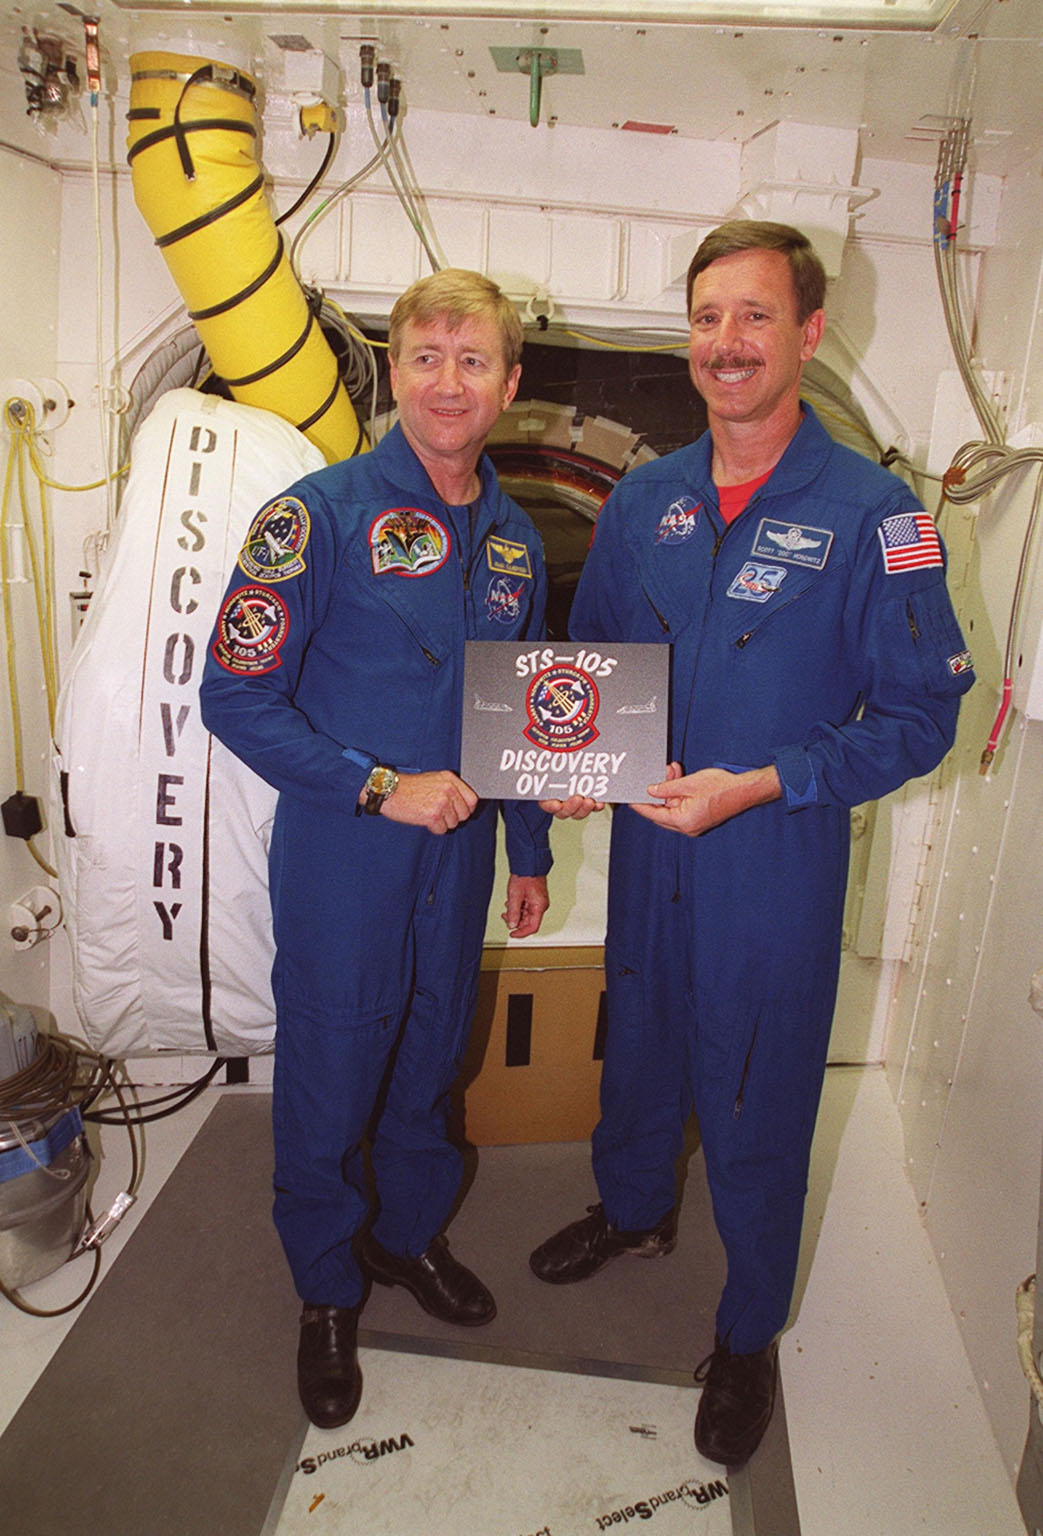 KENNEDY SPACE CENTER, Fla. -- Expedition Three Commander Frank Culbertson (left) and STS-105 Commander Scott Horowitz (right), in the White Room at Launch Pad 39A, hold the sign for their mission. Both crews are at KSC to take part in Terminal Countdown Demonstration Test activities, which include emergency egress training, a simulated launch countdown and familiarization with the payload. Mission STS-105 will be transporting the Expedition Three crew, several payloads and scientific experiments to the International Space Station aboard Discovery. The current Expedition Two crew members on the Station will return to Earth on Discovery. Launch of Discovery is scheduled no earlier than Aug. 9, 2001